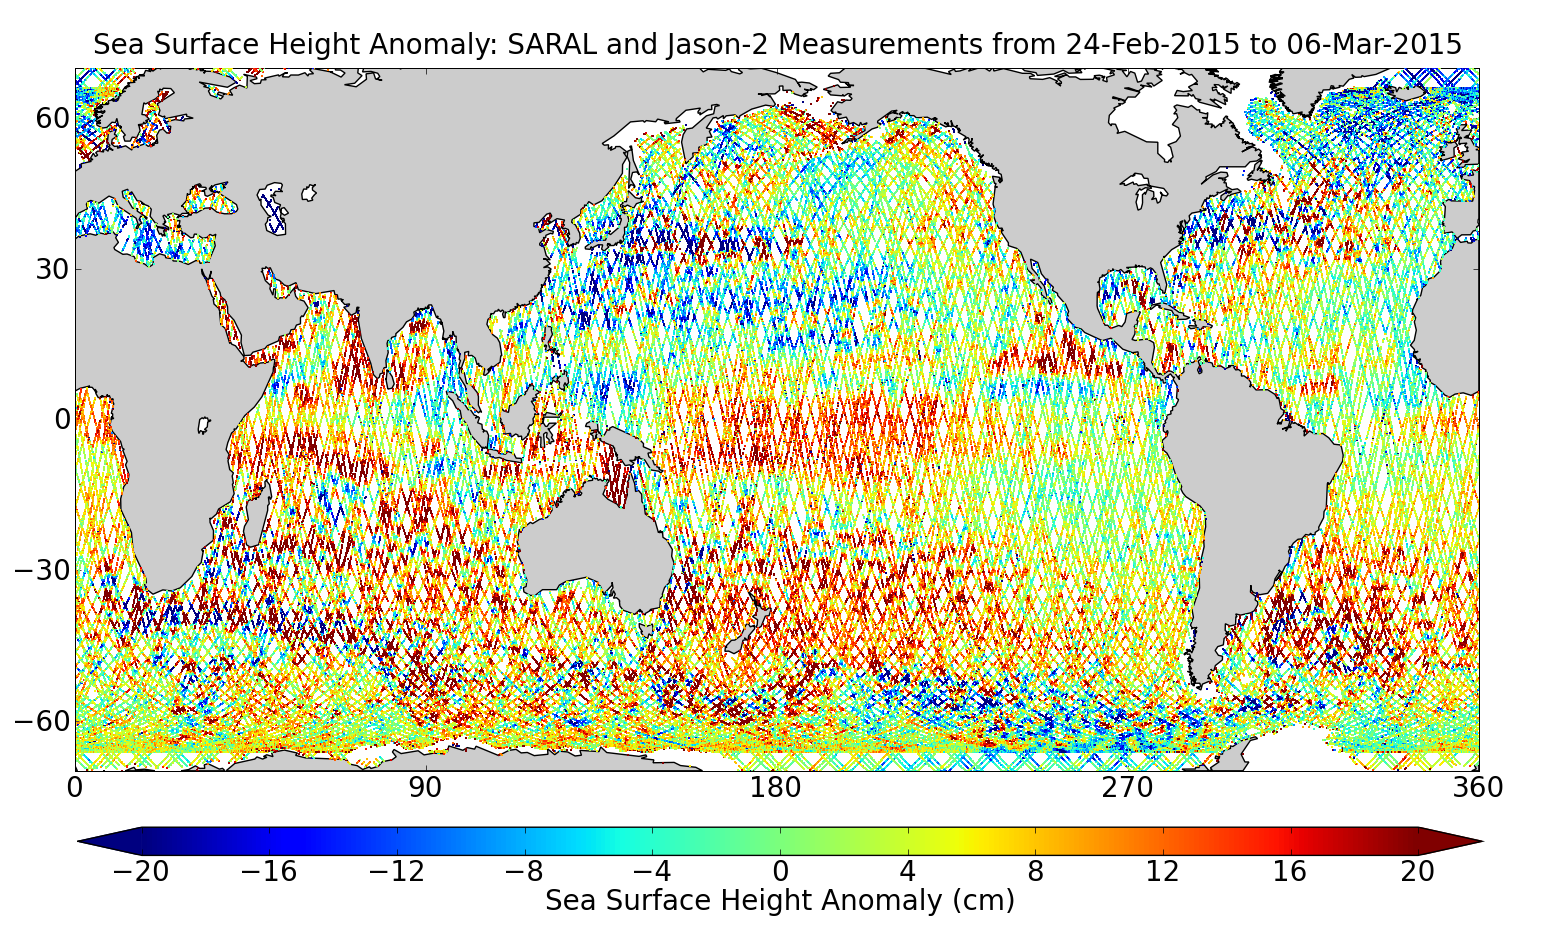 Sea Surface Height Anomaly: SARAL and Jason-2 Measurements from 24-Feb-2015 to 06-Mar-2015